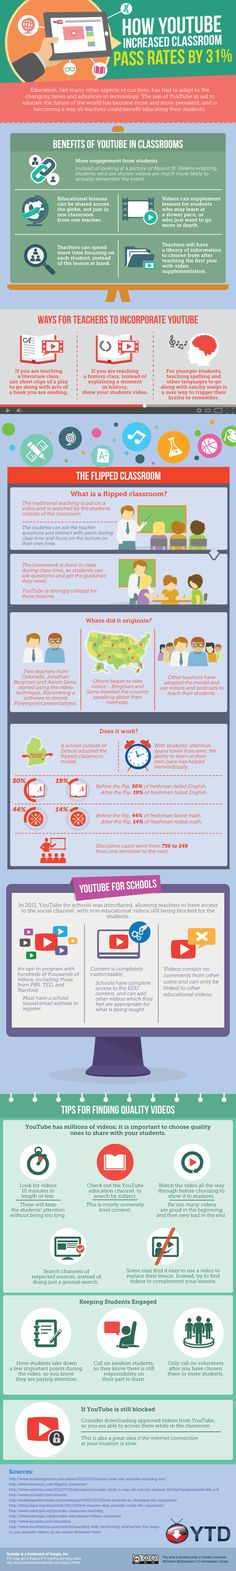 How YouTube Increases Classroom Pass Rates Infographic - http://elearninginfographics.com/youtube-increases-classroom-pass-rates-infographic/